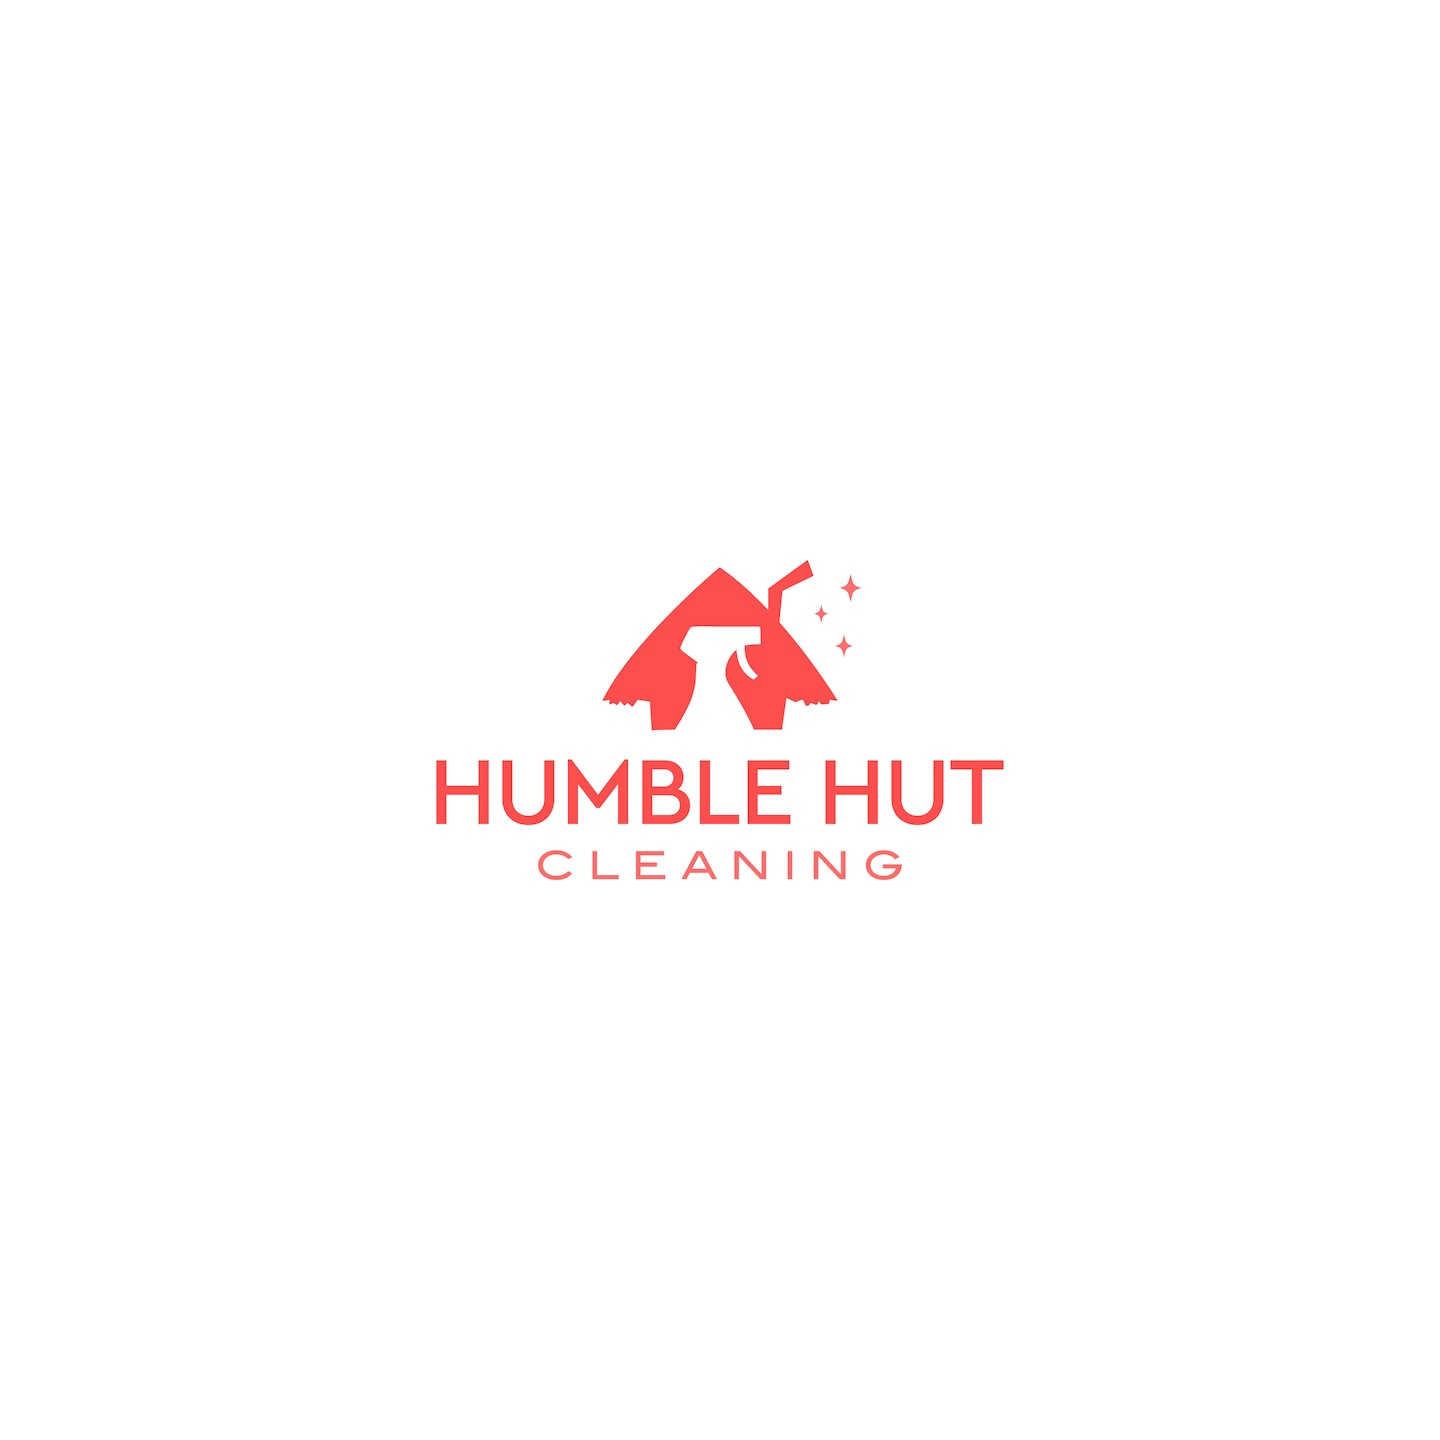 Humble Hut Cleaning